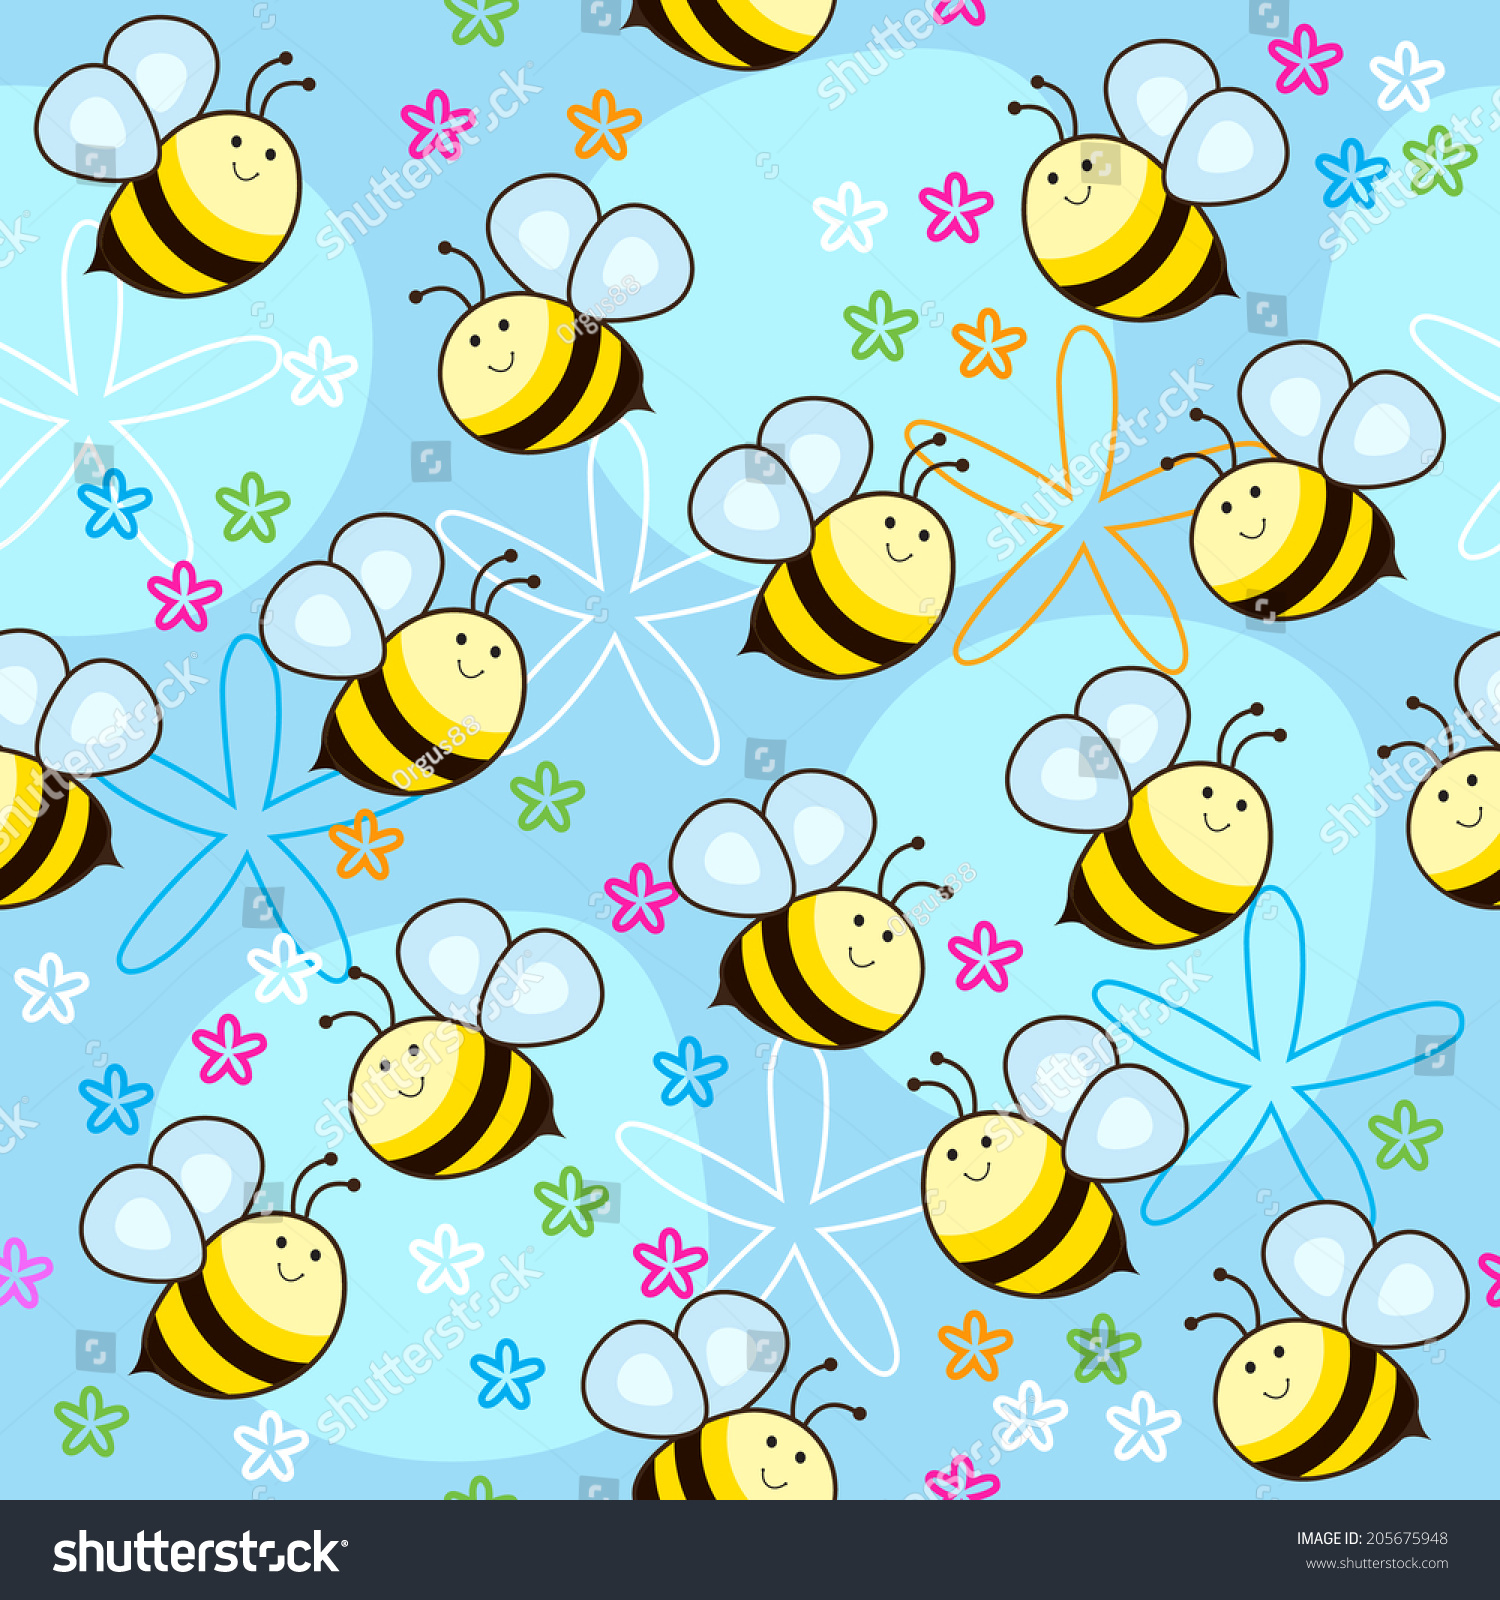 Seamless pattern cute bees design fabricbackgrounds stock for Cute paper designs